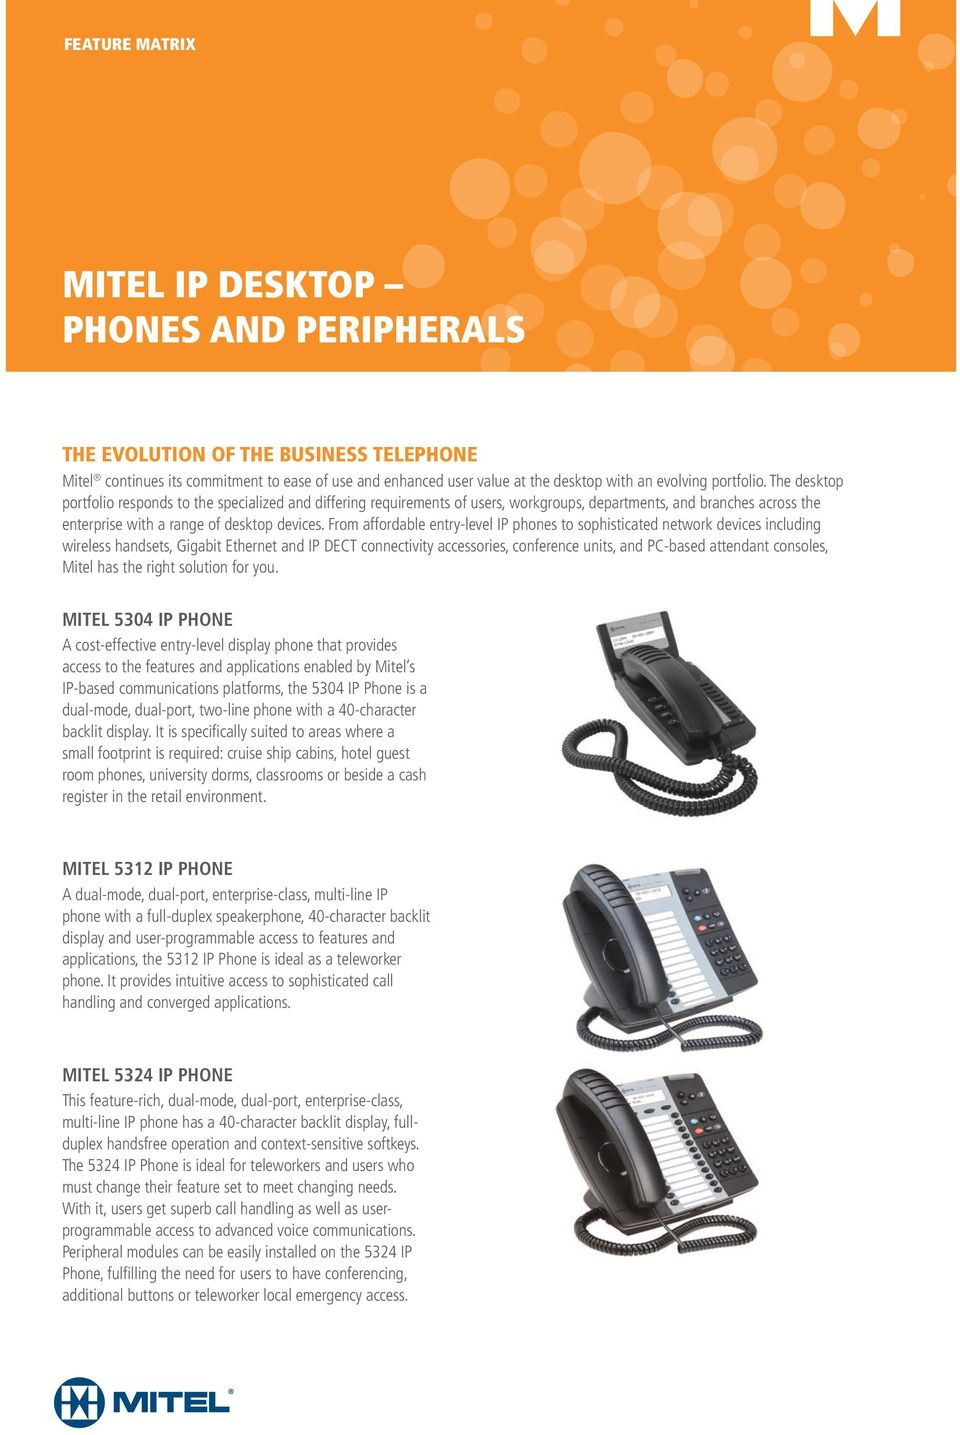 From affordable entry-level IP phones to sophisticated network devices including wireless handsets, Gigabit Ethernet and IP DECT connectivity accessories, conference units, and PC-based attendant